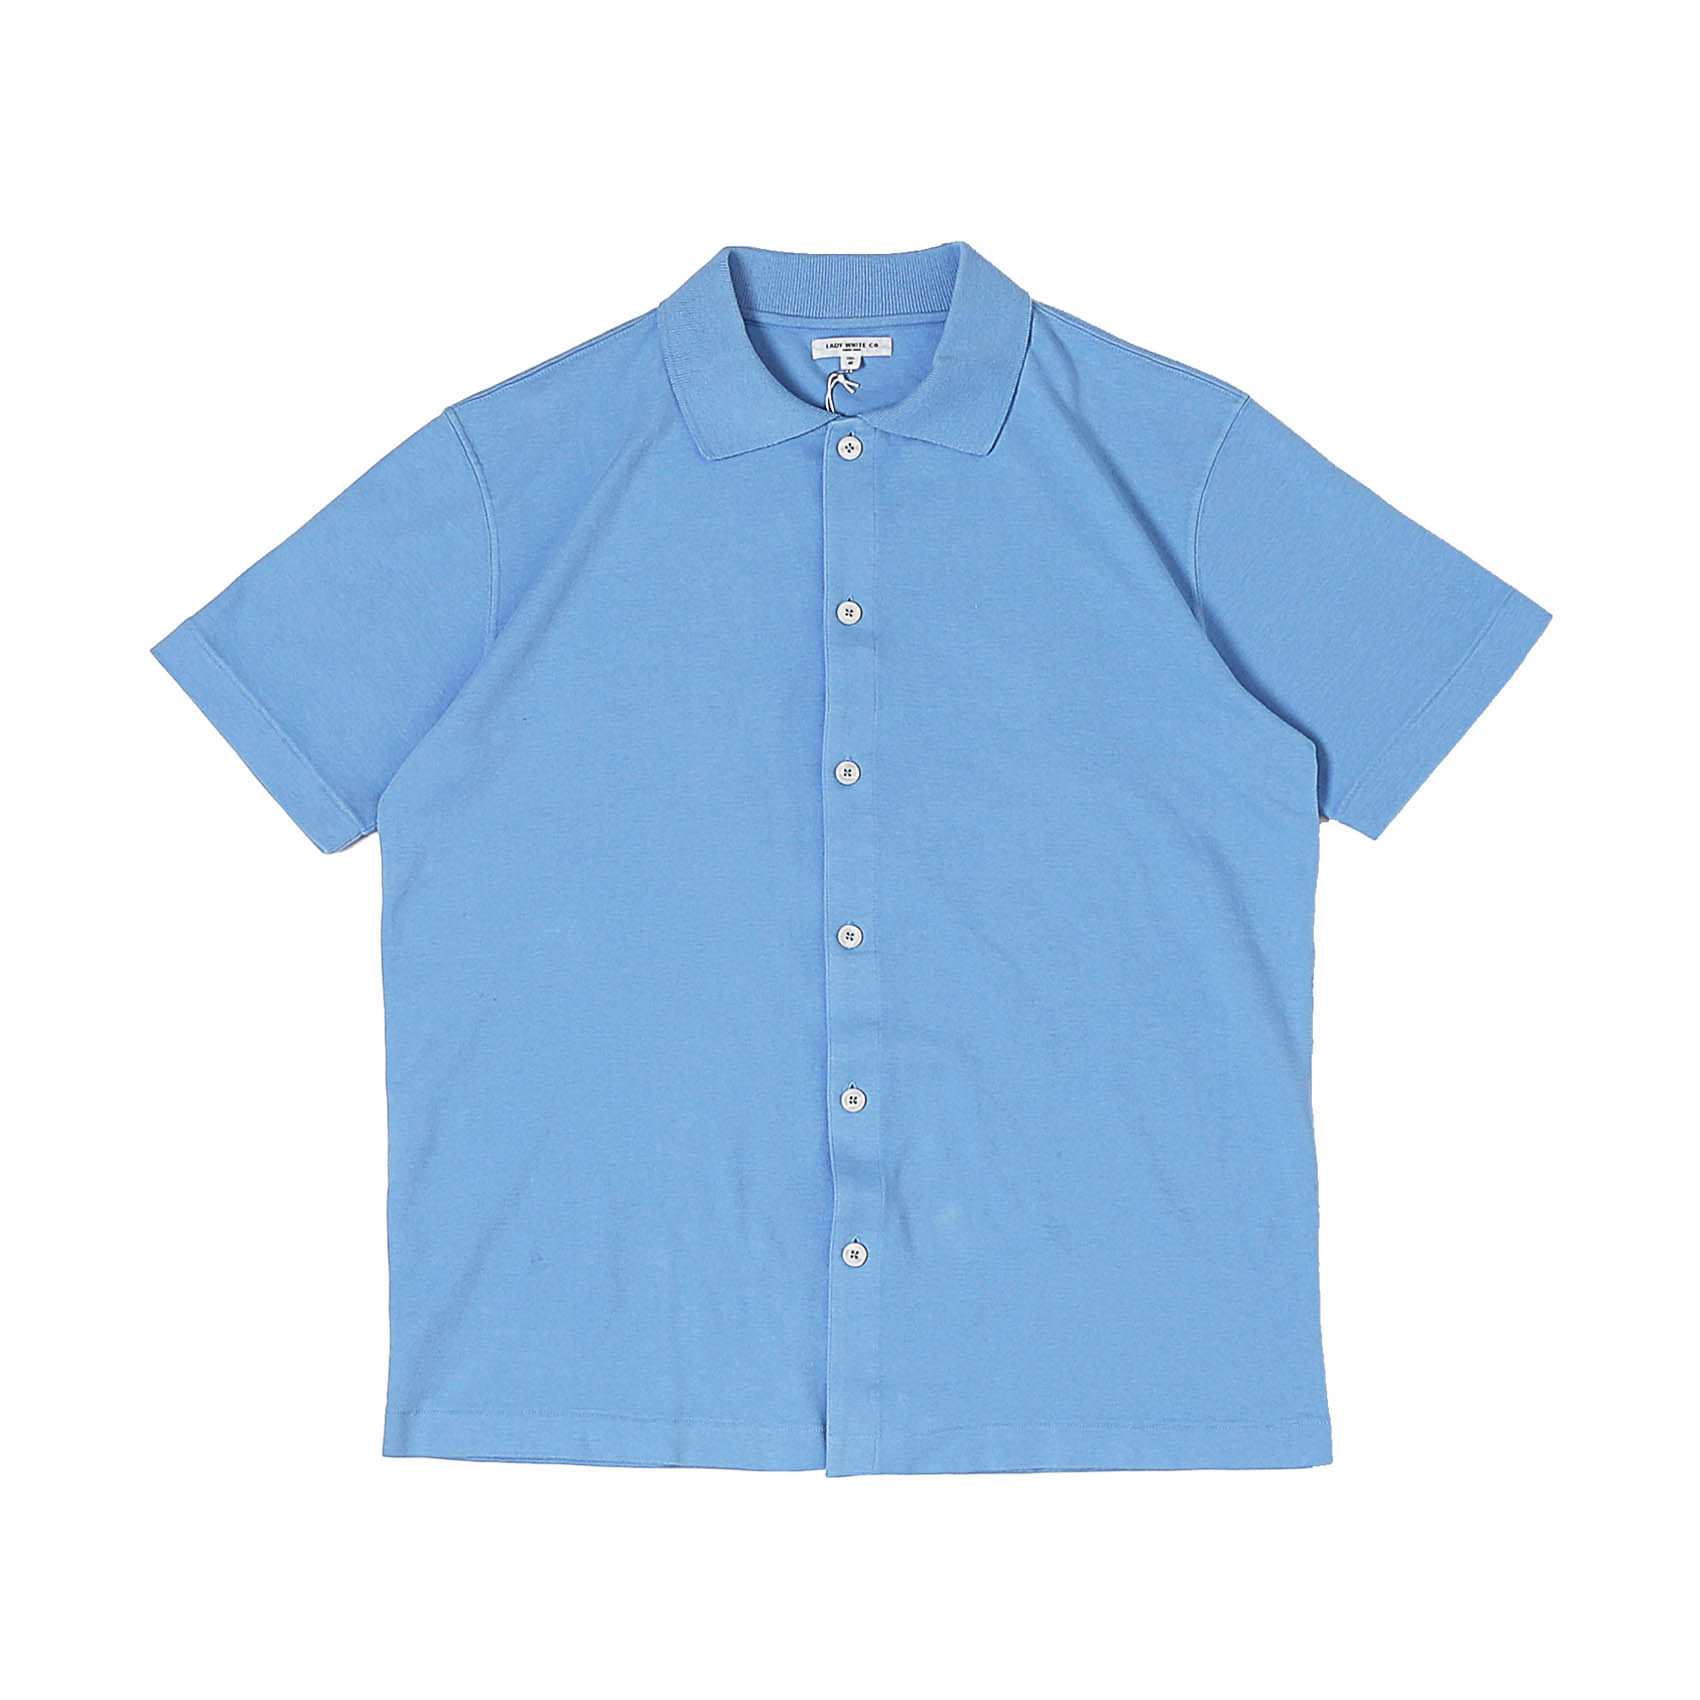 S/S PLACKET POLO - SKY BLUE